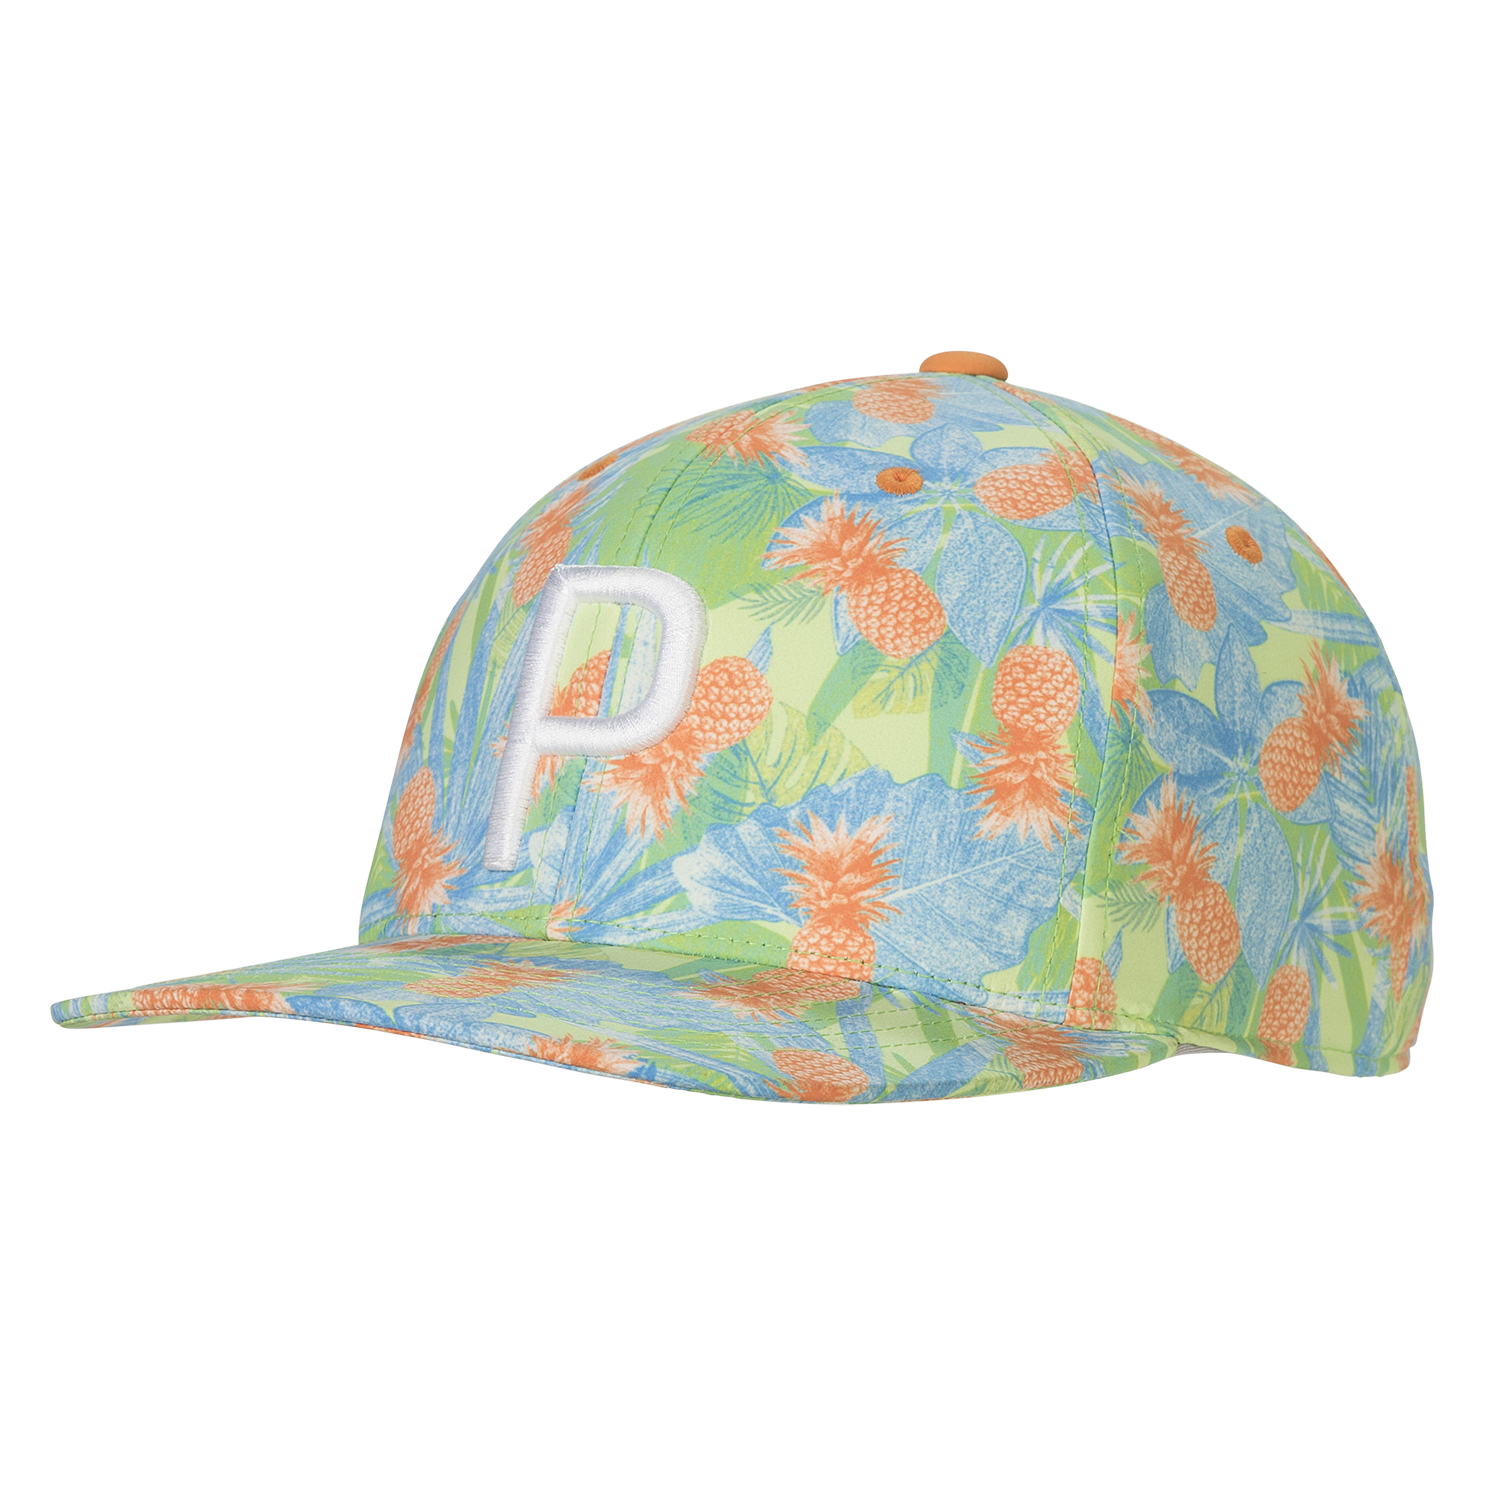 0b3b9851317 ... discount code for images. puma p paradise snapback hat 5eab1 28979